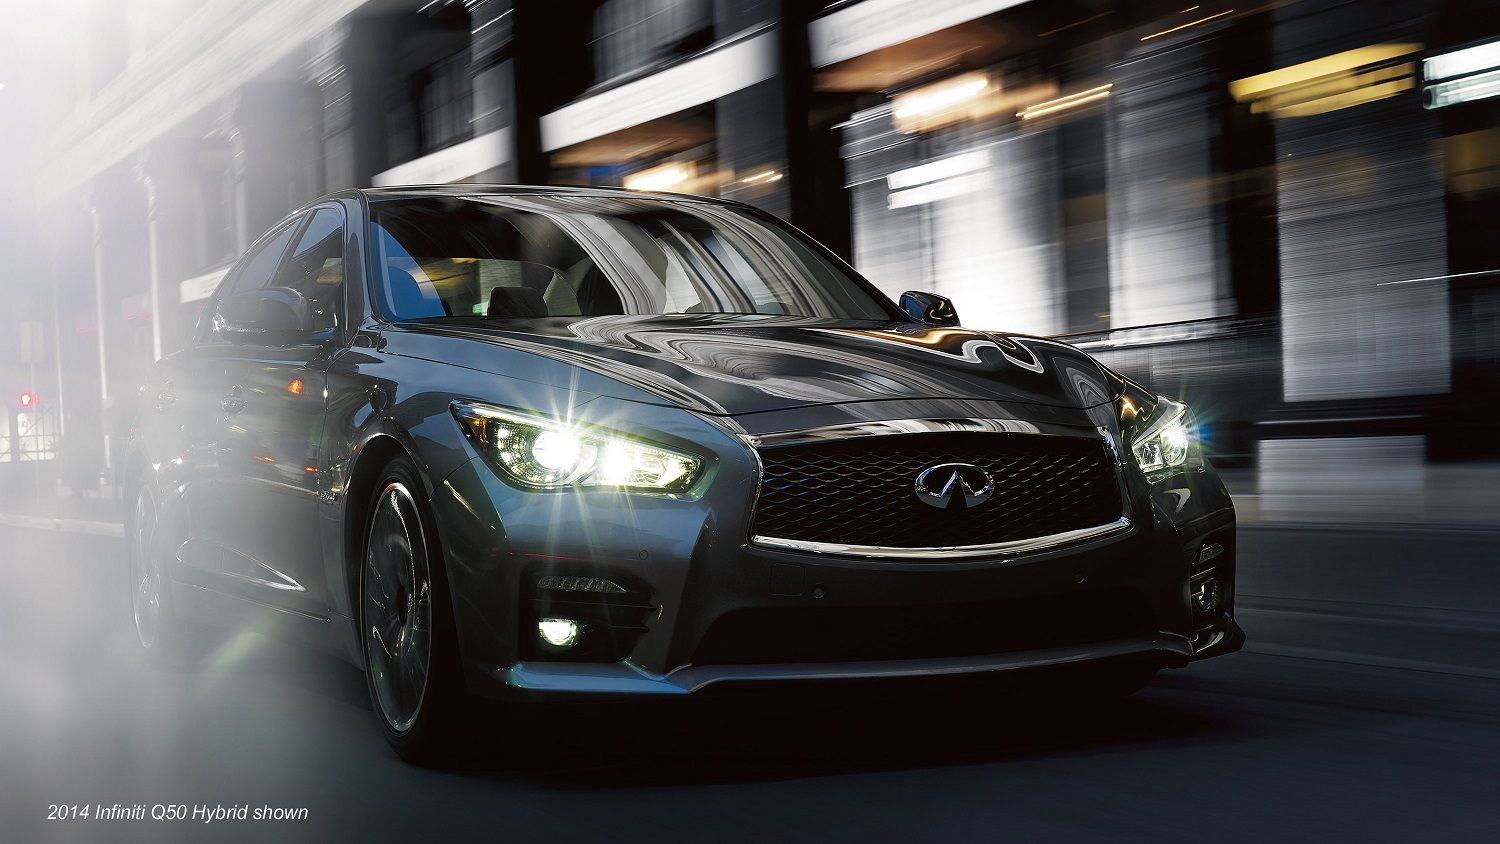 2014 infiniti q50 review and test drive the video below offers an in depth review